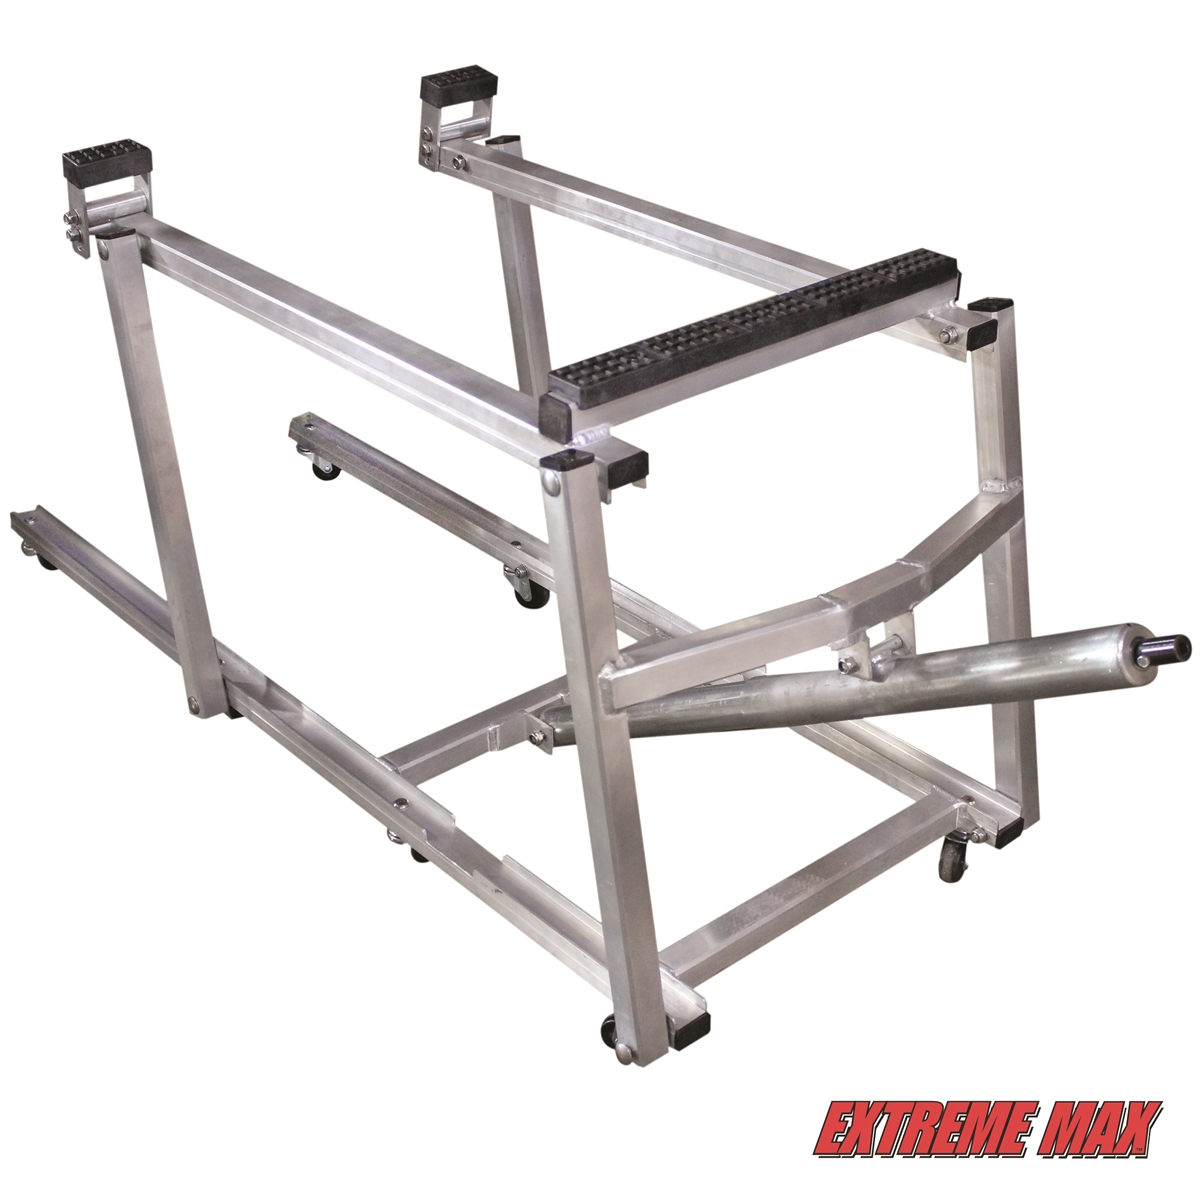 Extreme max deluxe aluminum snowmobile lift for Shop hoist plans